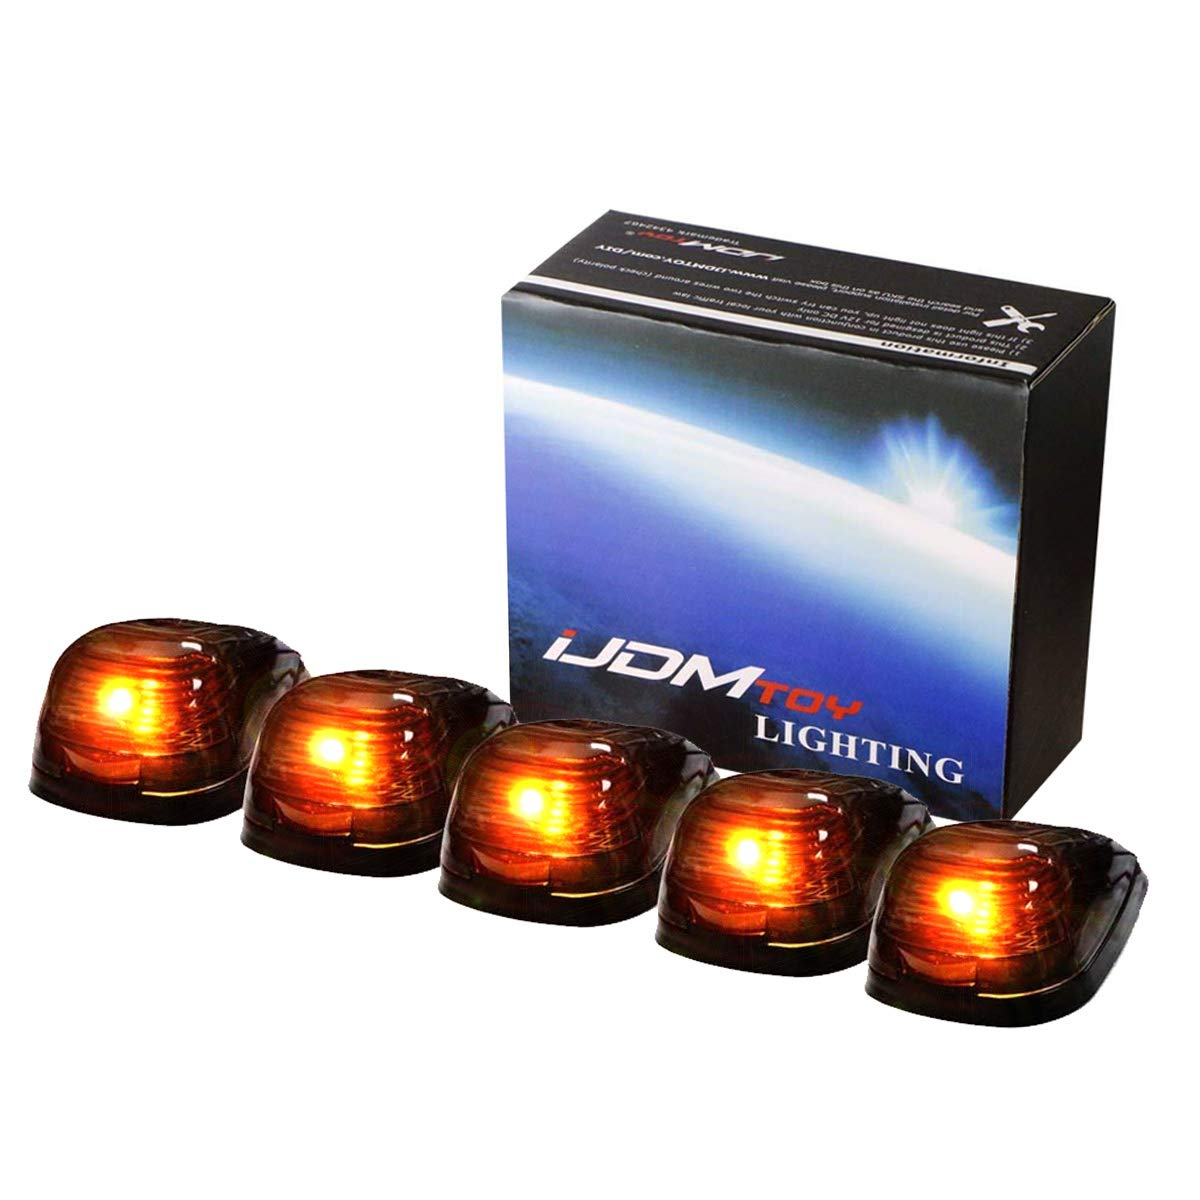 iJDMTOY 5pcs Black Smoked Cab Roof Top Marker Running Lamps w/ 5-SMD-5050 Amber LED Lights For Truck 4x4 SUV iJDMTOY Auto Accessories Super Bright LED Cab Marker Lighting Kit